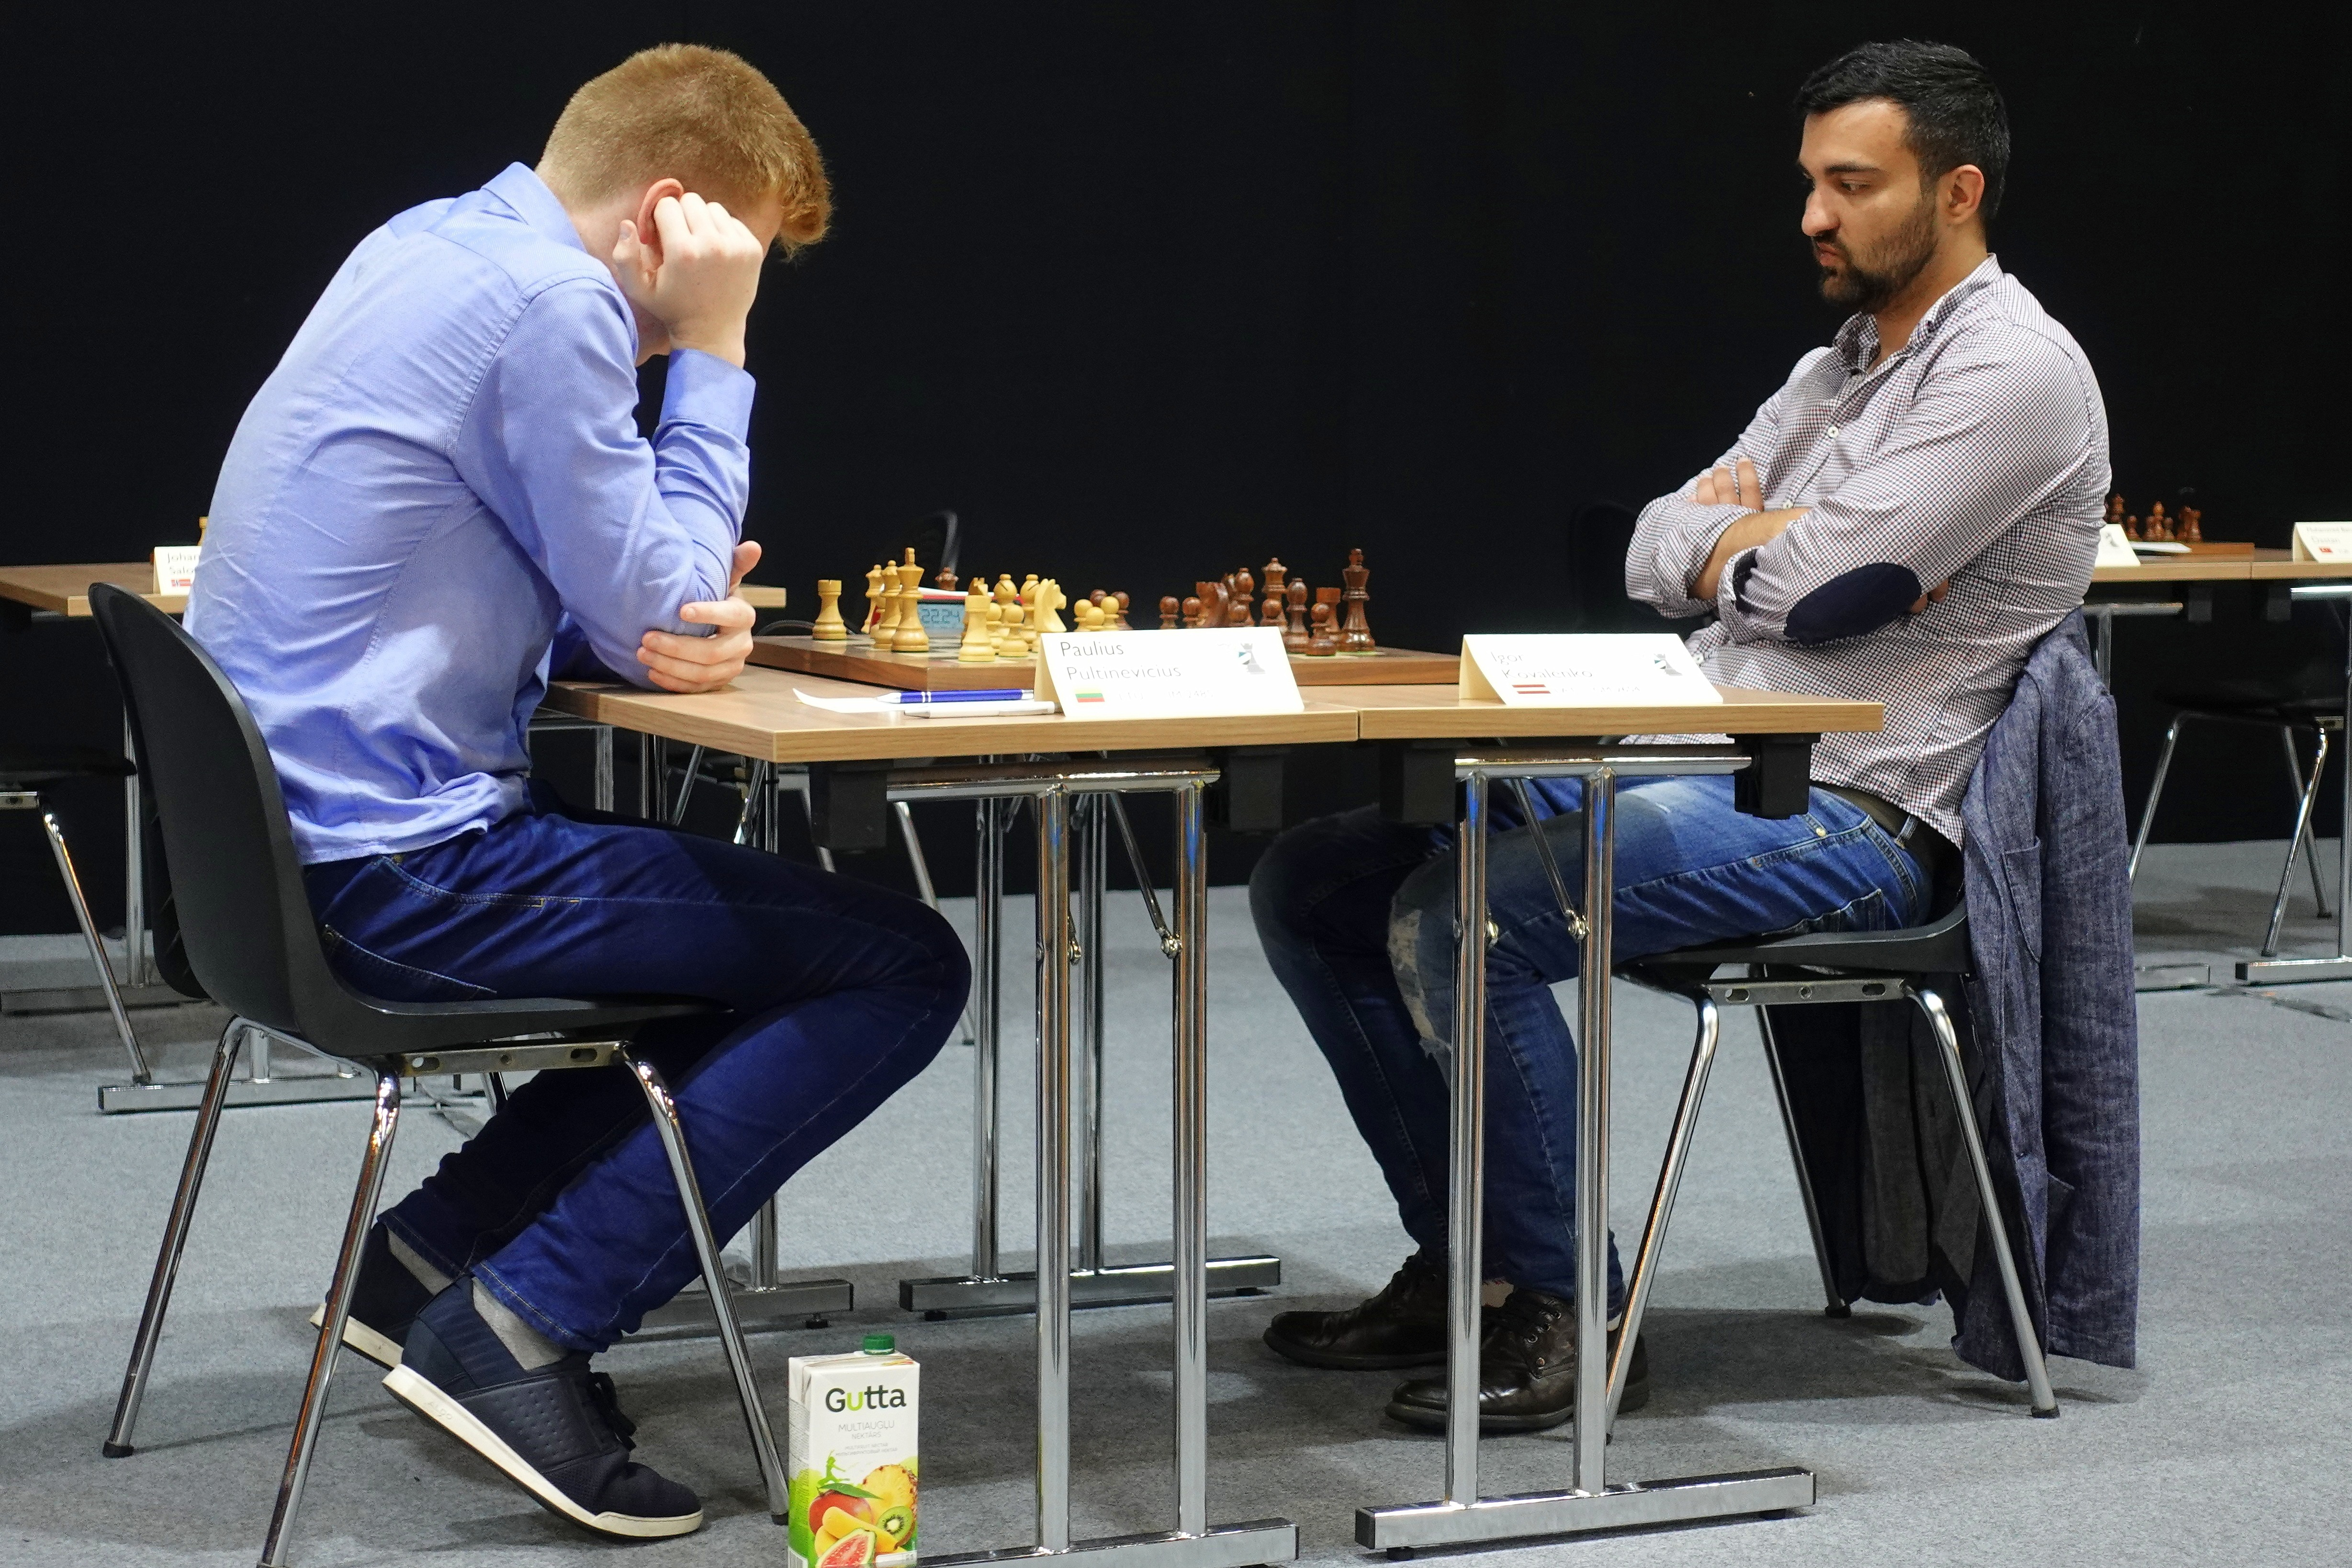 Kovalenko wins 2019 RTU Open on tiebreaks over Sulskis